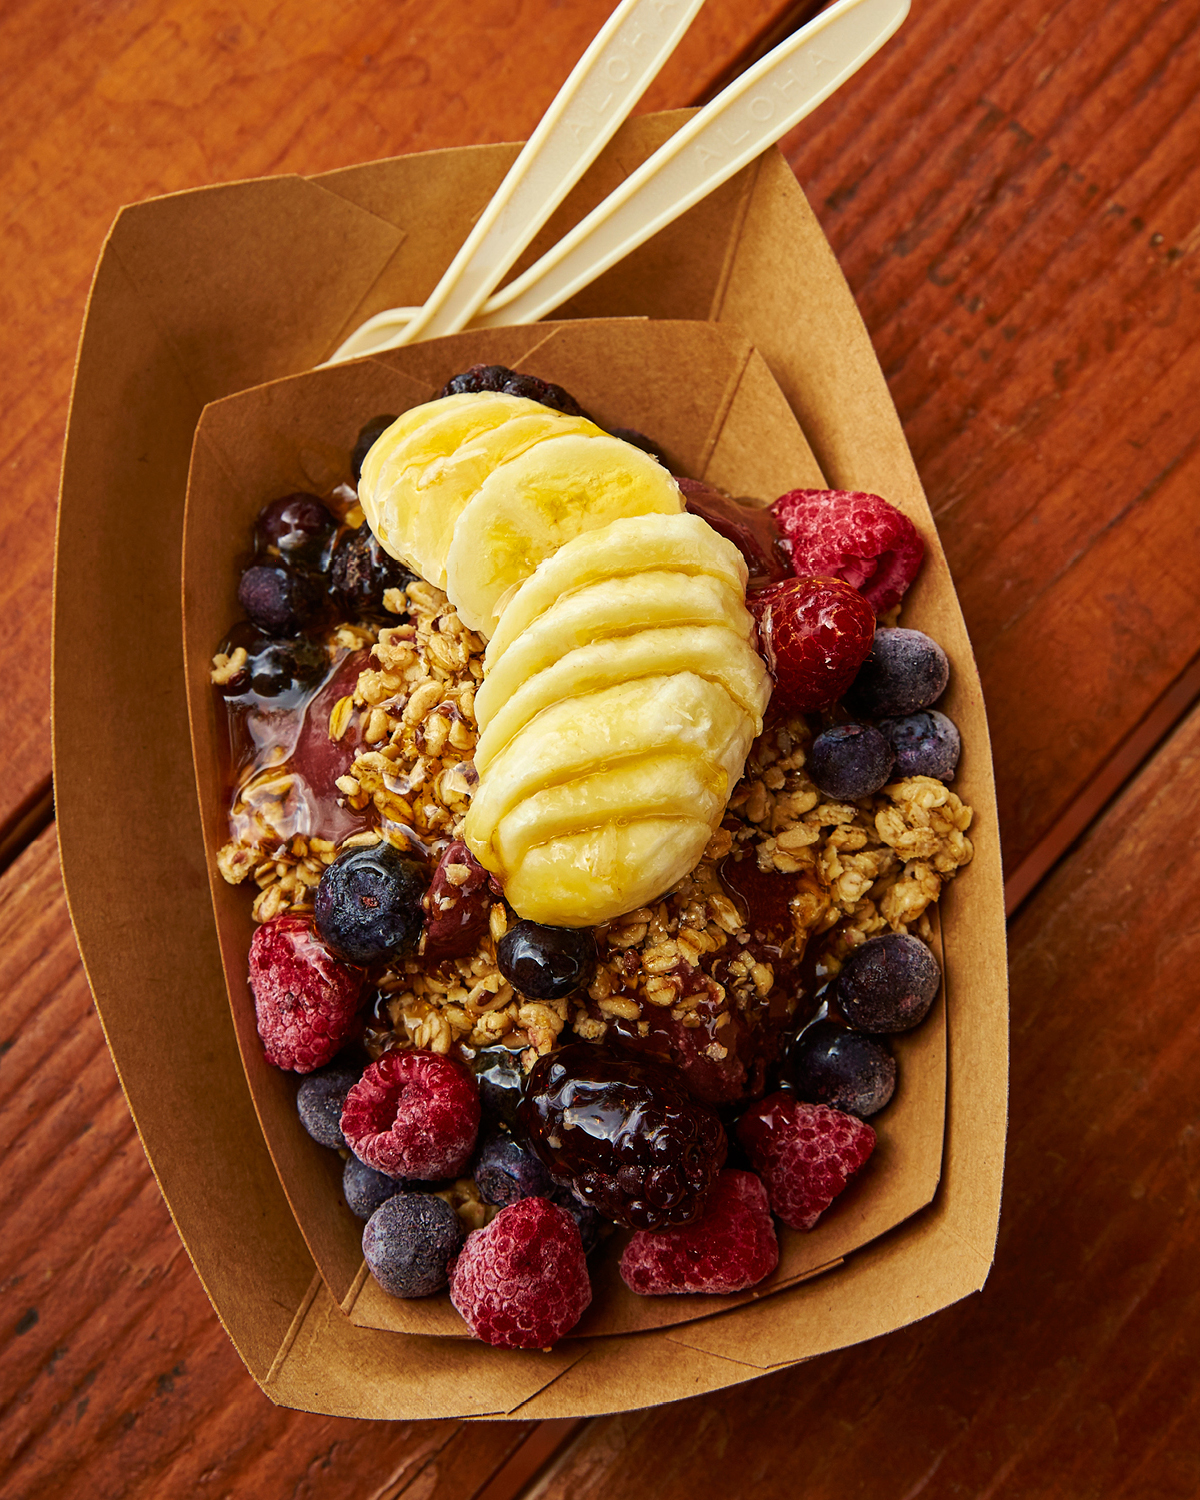 EVER-SO-POPULAR ACAI BOWL AT SHARKS COVE GRILL